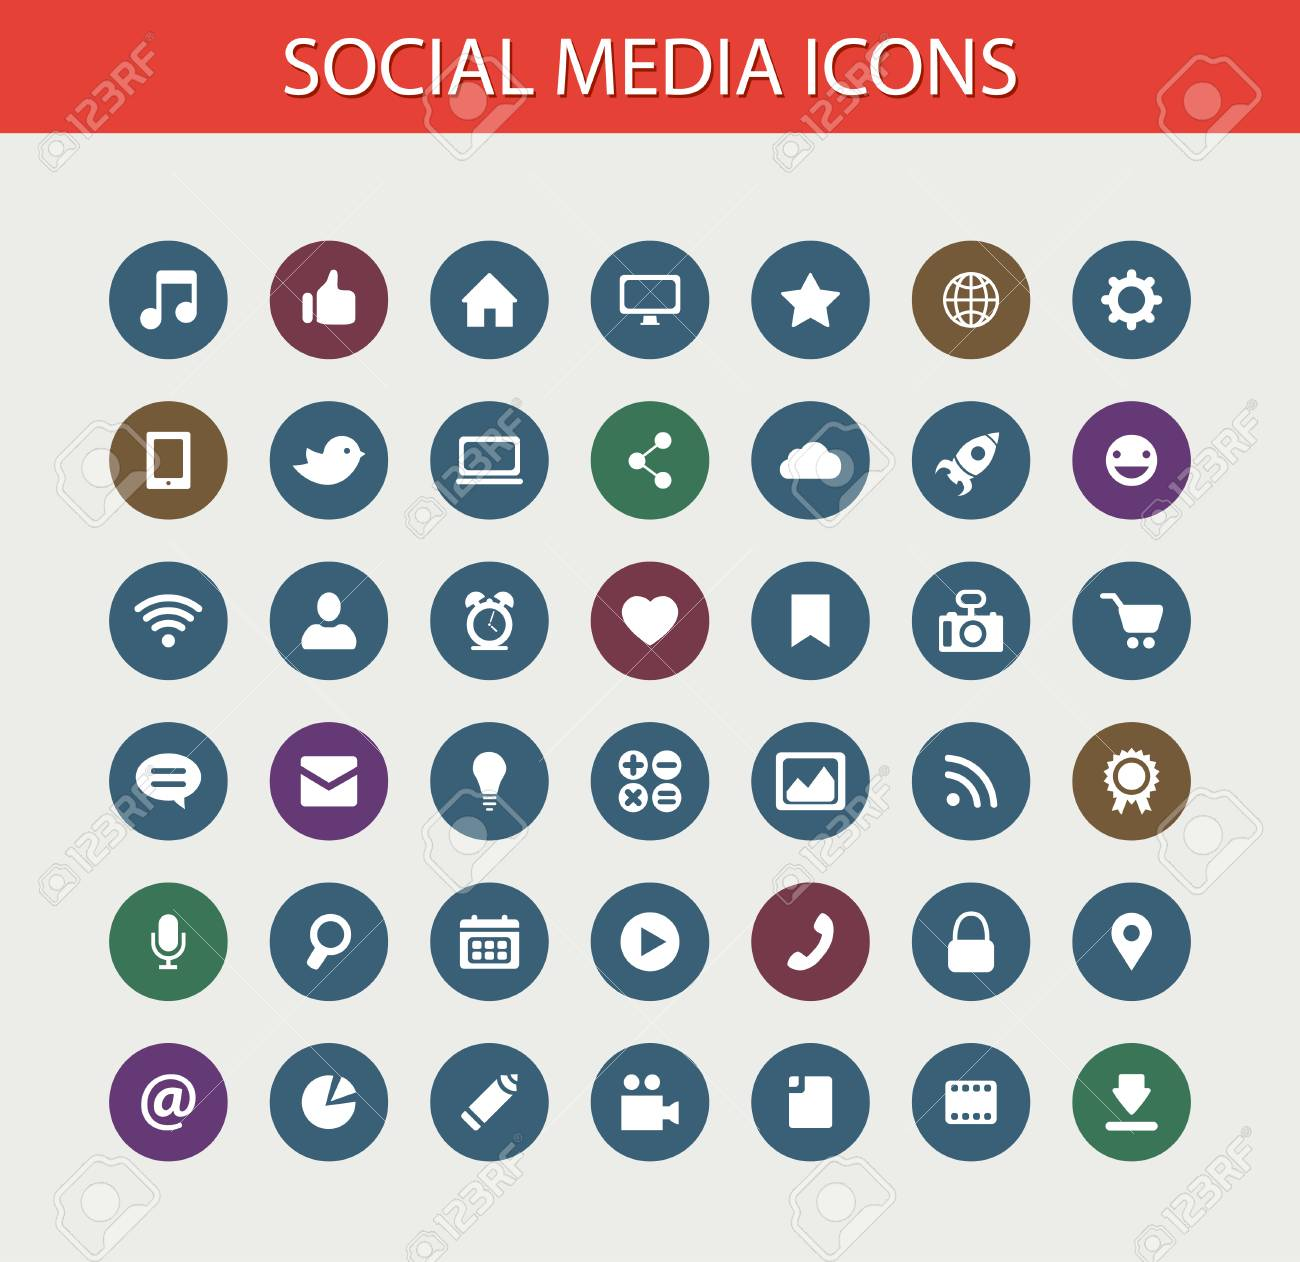 Set Of Vector Modern Flat Design Social Media Icons Royalty Free Cliparts Vectors And Stock Illustration Image 31457493